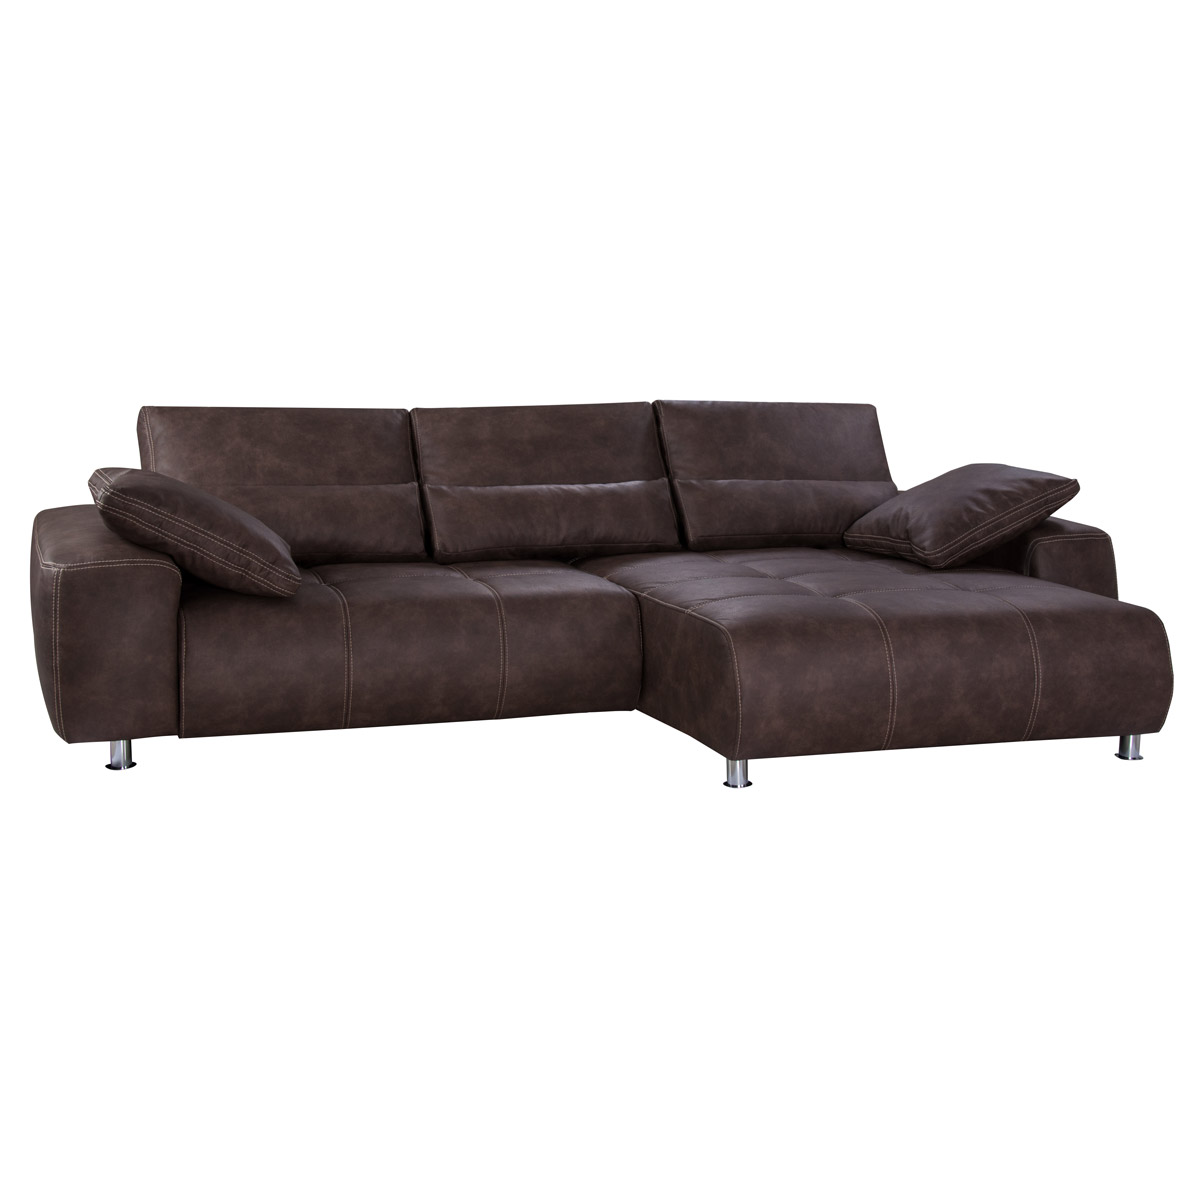 ecksofa briatore darkbrown braun schlafsofa mit bettkasten. Black Bedroom Furniture Sets. Home Design Ideas